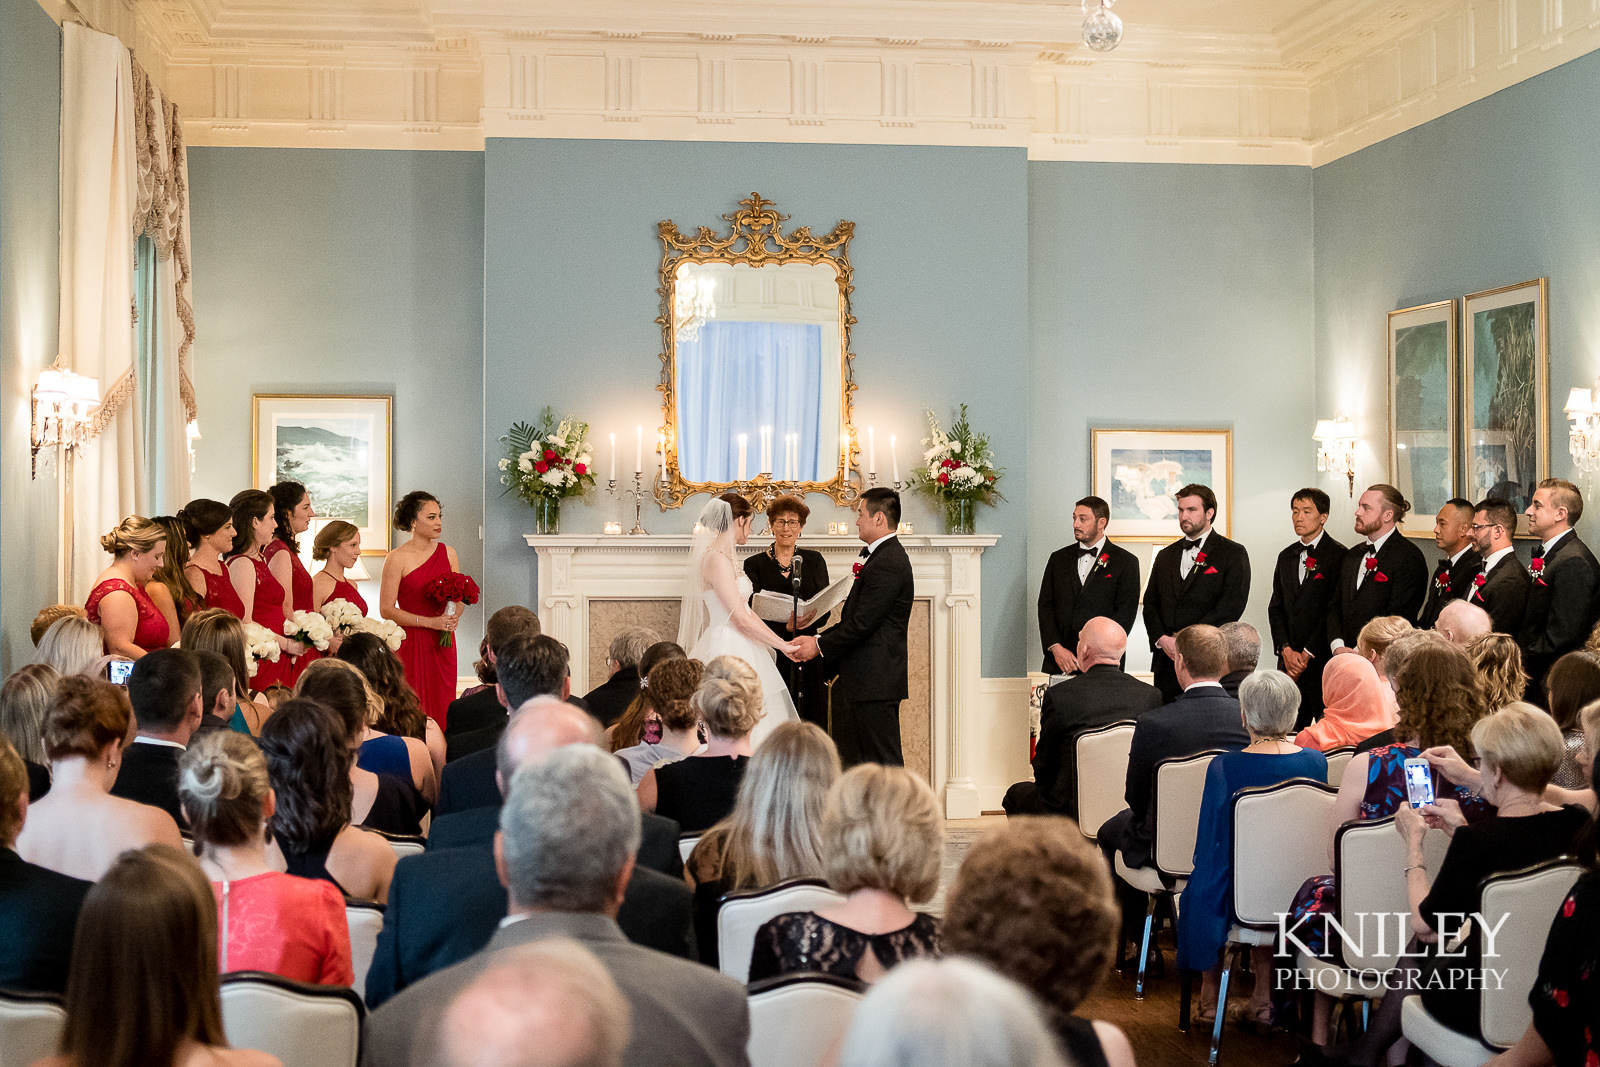 069 - Rochester NY wedding pictures - Genesee Valley Club - Ceremony and Reception - XT2B6805.jpg